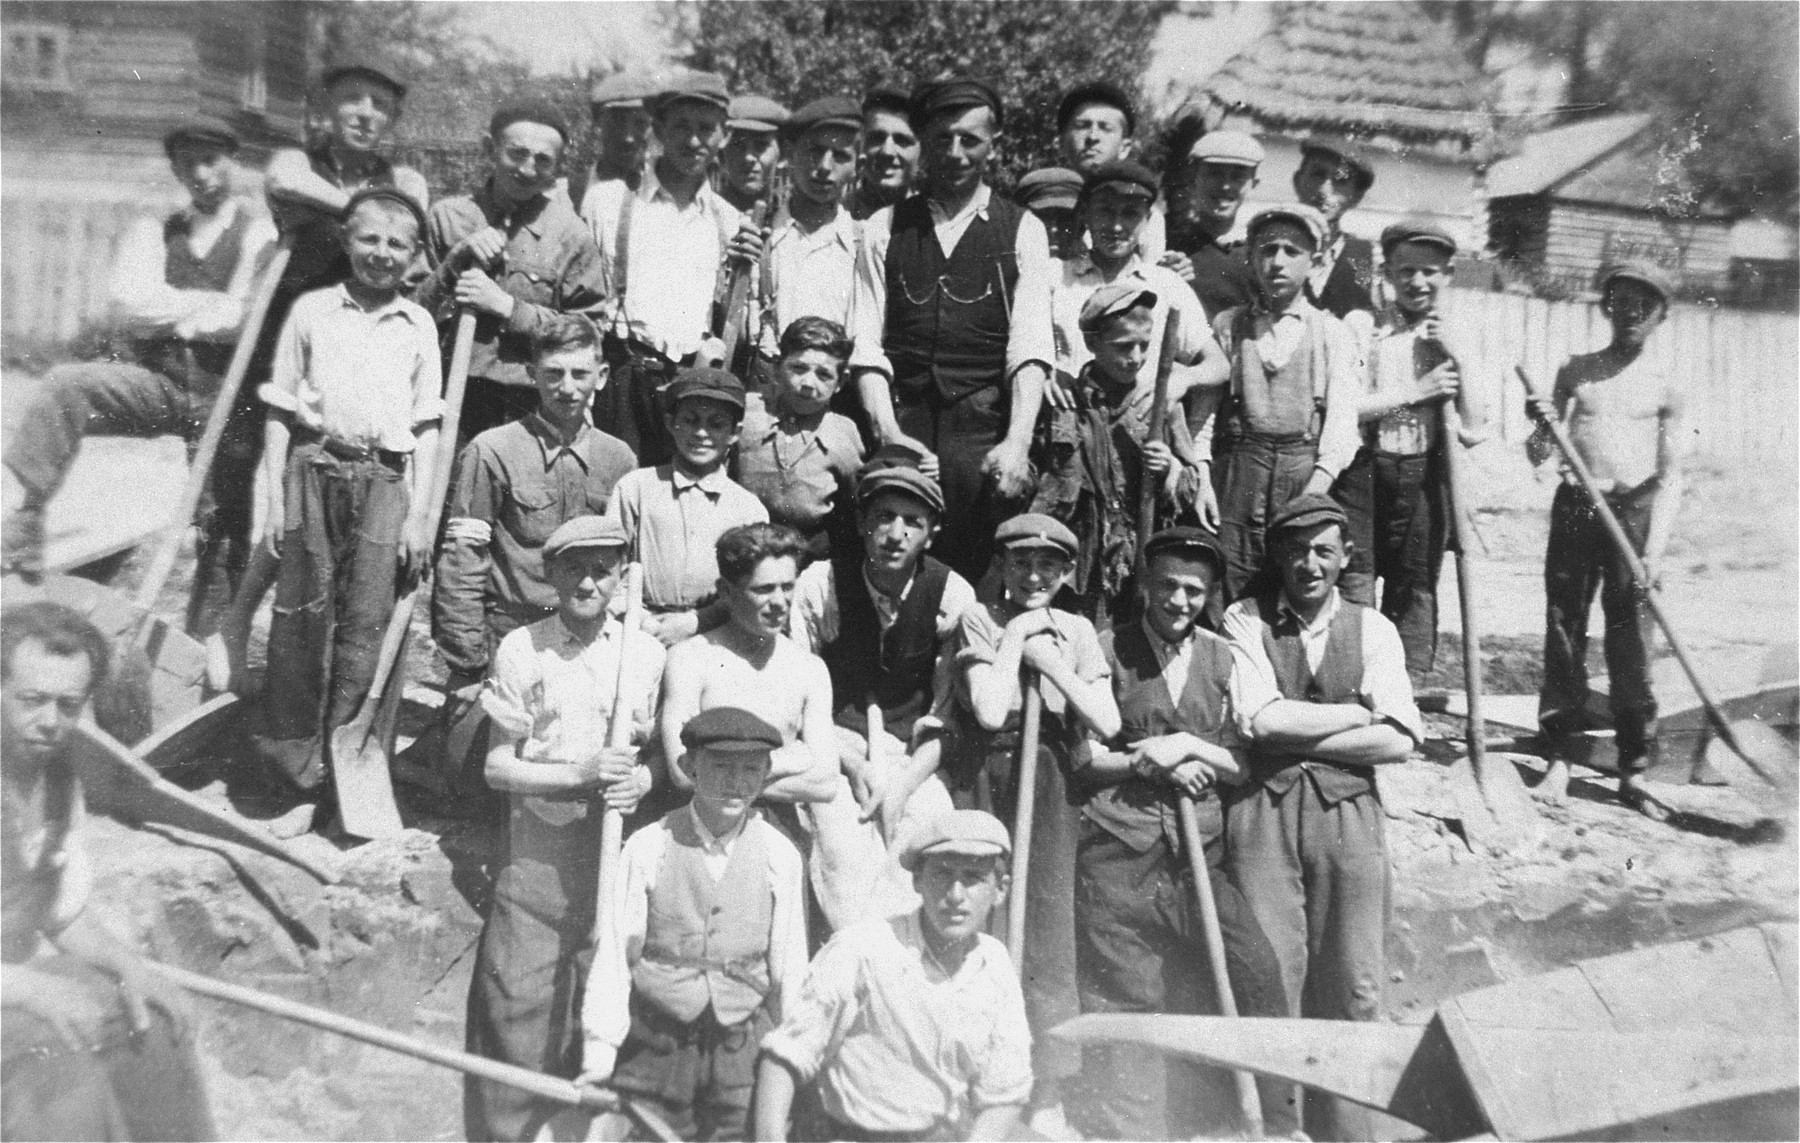 Group portrait of Jewish forced laborers holding shovels in Kolbuszowa.